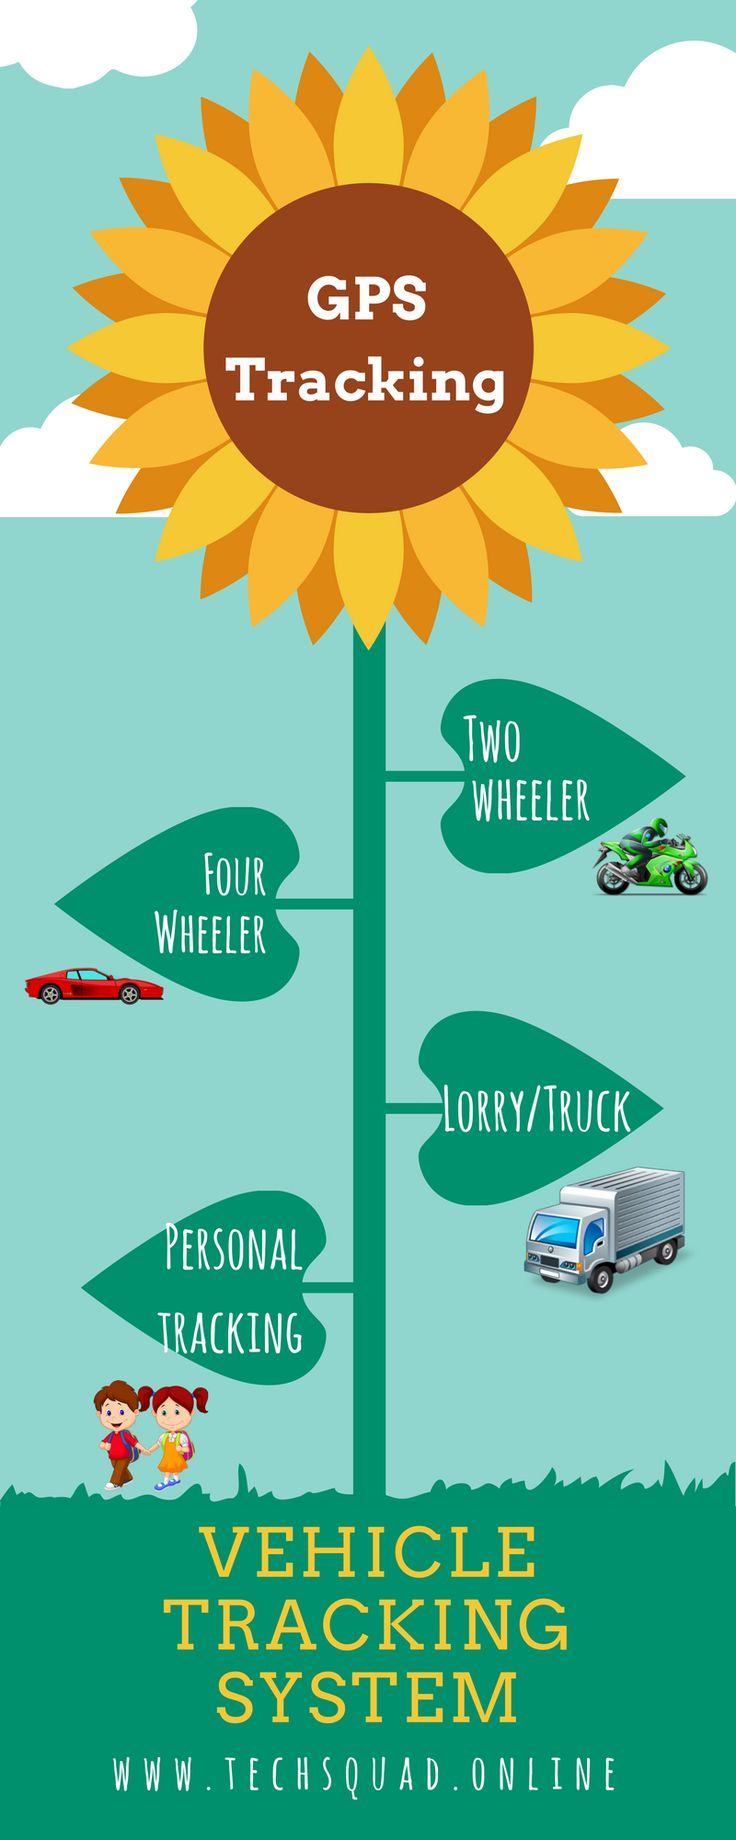 Techsquad delivering advanced GPS vehicle tracking system for every kind of vehicles like motorbike, car, bus, lorry/truck and that we have doing Personal tracking especially for child care and Asset tracking for your valuable assets and helps overall fleet management system business it cost effectively in Coimbatore, India.